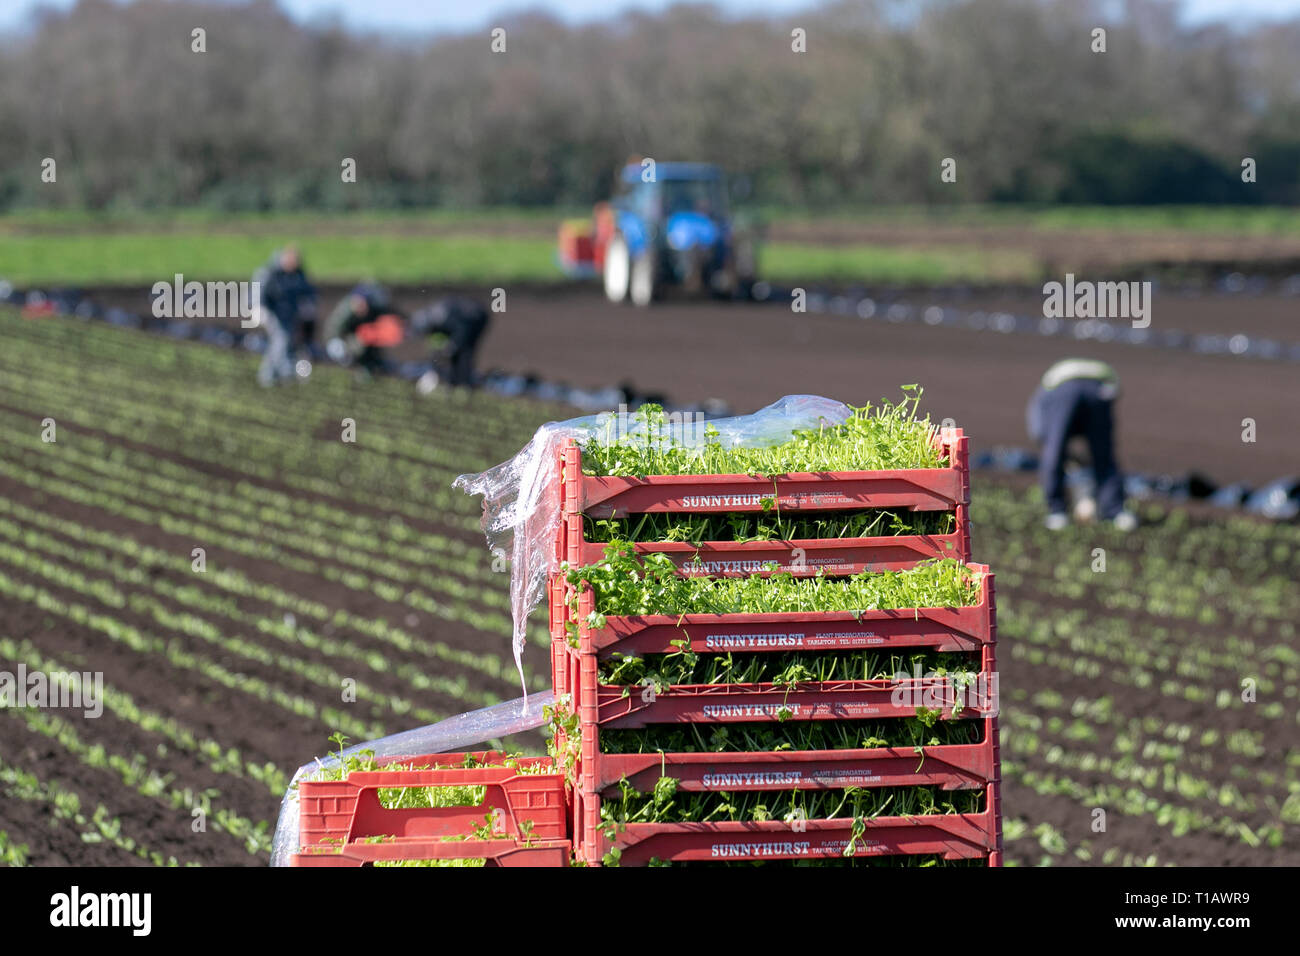 Tarleton, Lancashire. 25th March, 2019. UK Weather. Spring planting of lettuce as Eu migrant seasonal labourers return to 'The Salad Bowl' of Lancashire to assist with the springtime planting of various varieties of lettuce seedlings.  These early crops will likely then are covered in agricultural fleece for a week or so to protect against frost. Credit. MediaWorldImages/AlamyLiveNews - Stock Image